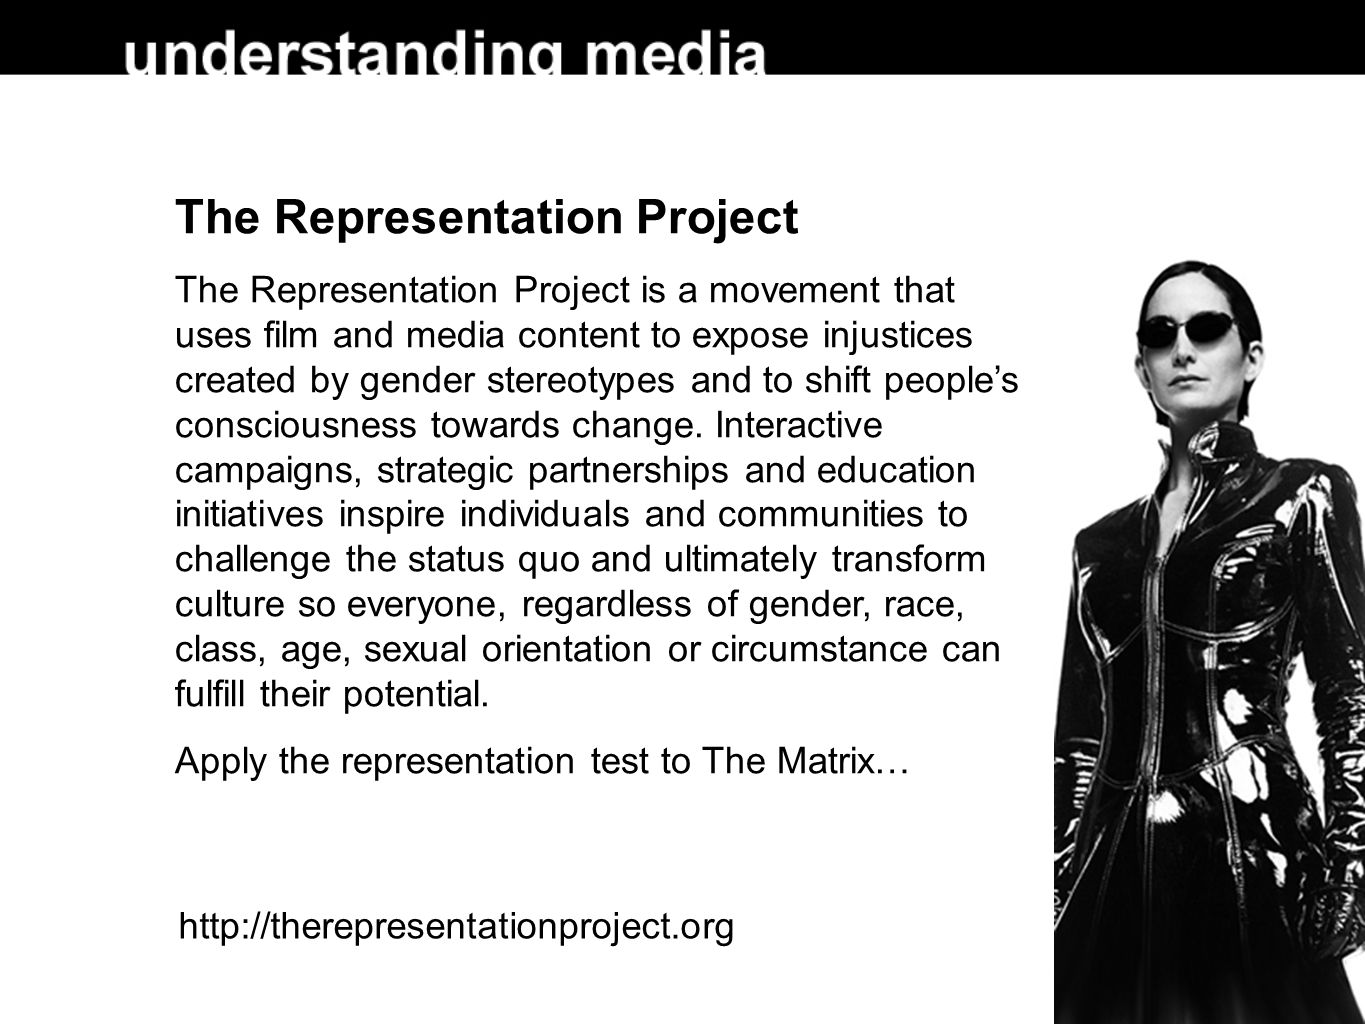 The Representation Project The Representation Project is a movement that uses film and media content to expose injustices created by gender stereotypes and to shift people's consciousness towards change.